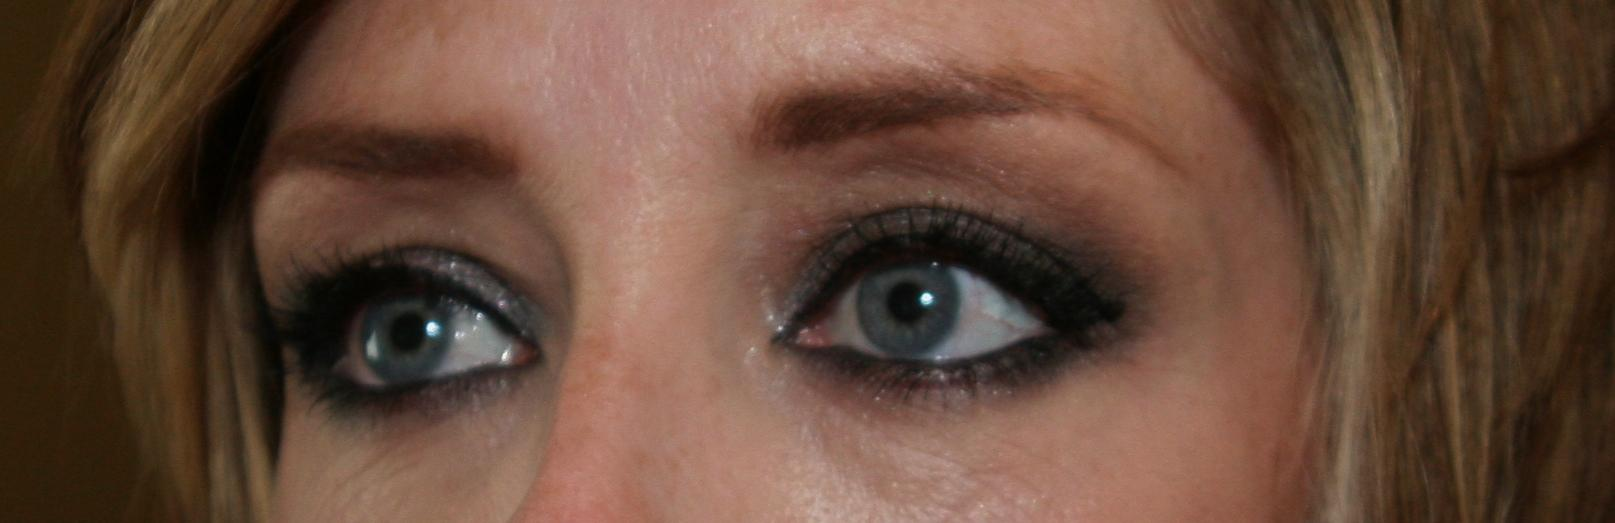 Daytime eye to Sultry Nighttime Eyes! - image 3 - student project